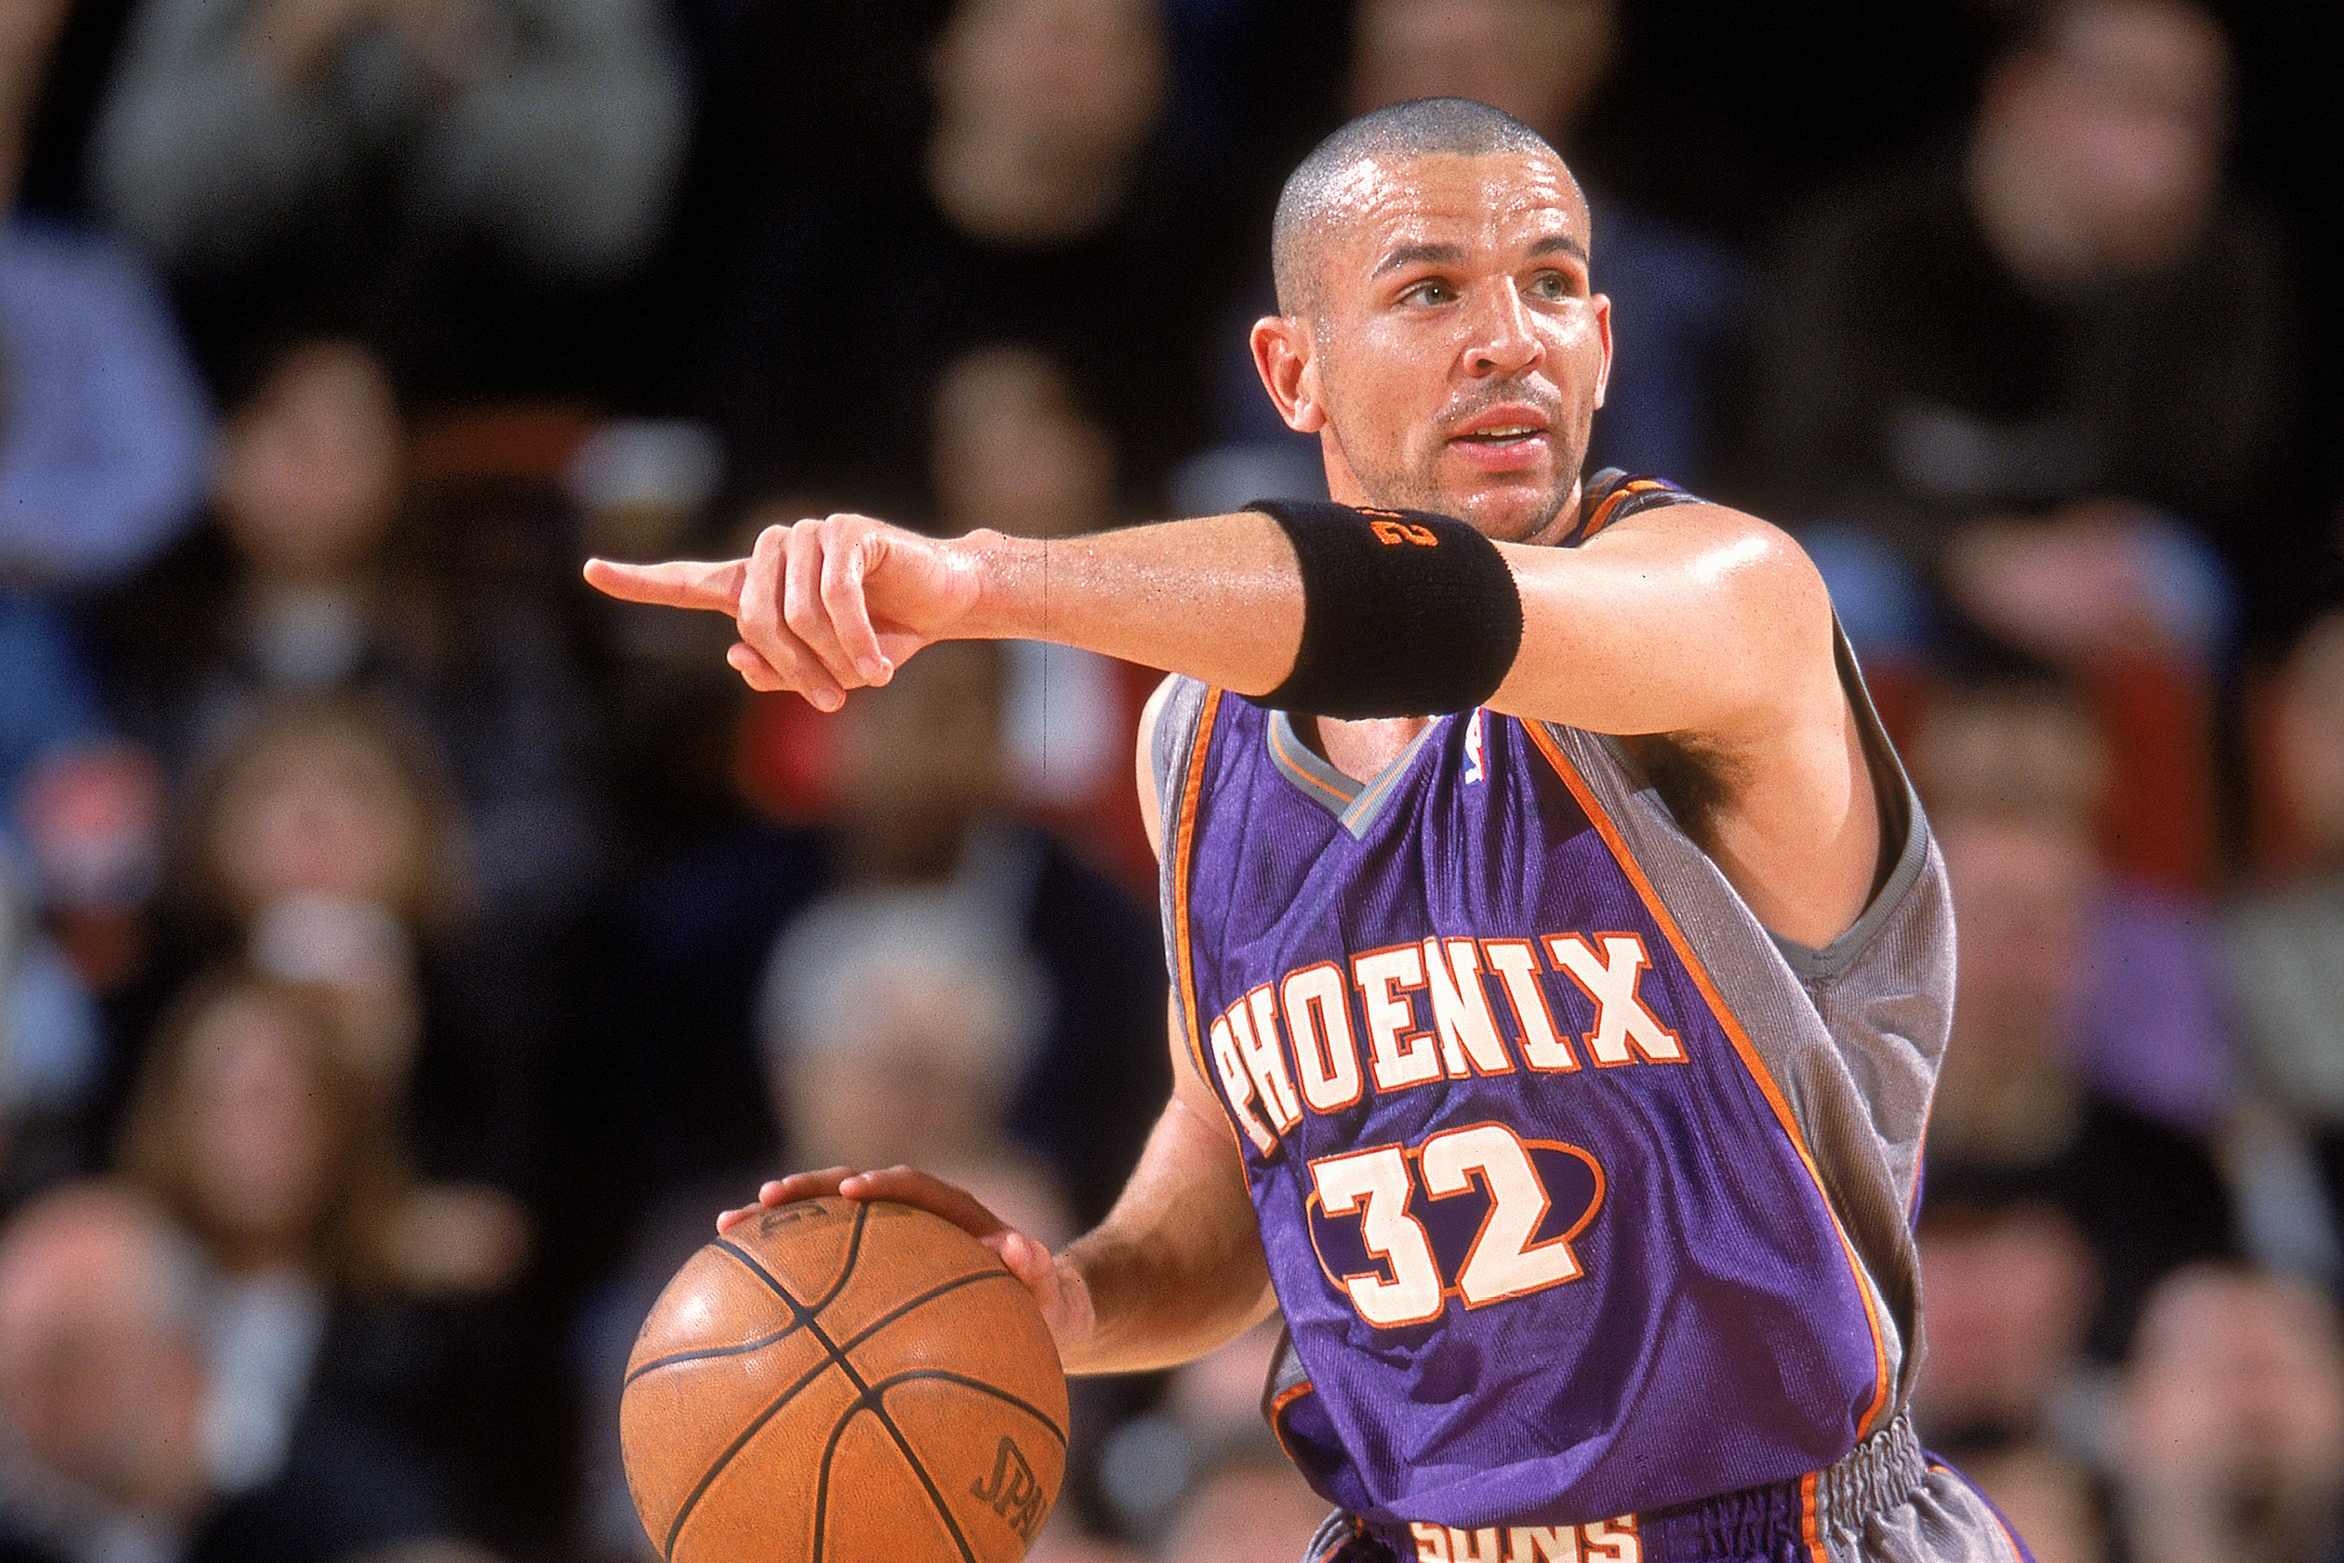 You've gotta feel for Jason Kidd now that he's been exiled to New Jersey.